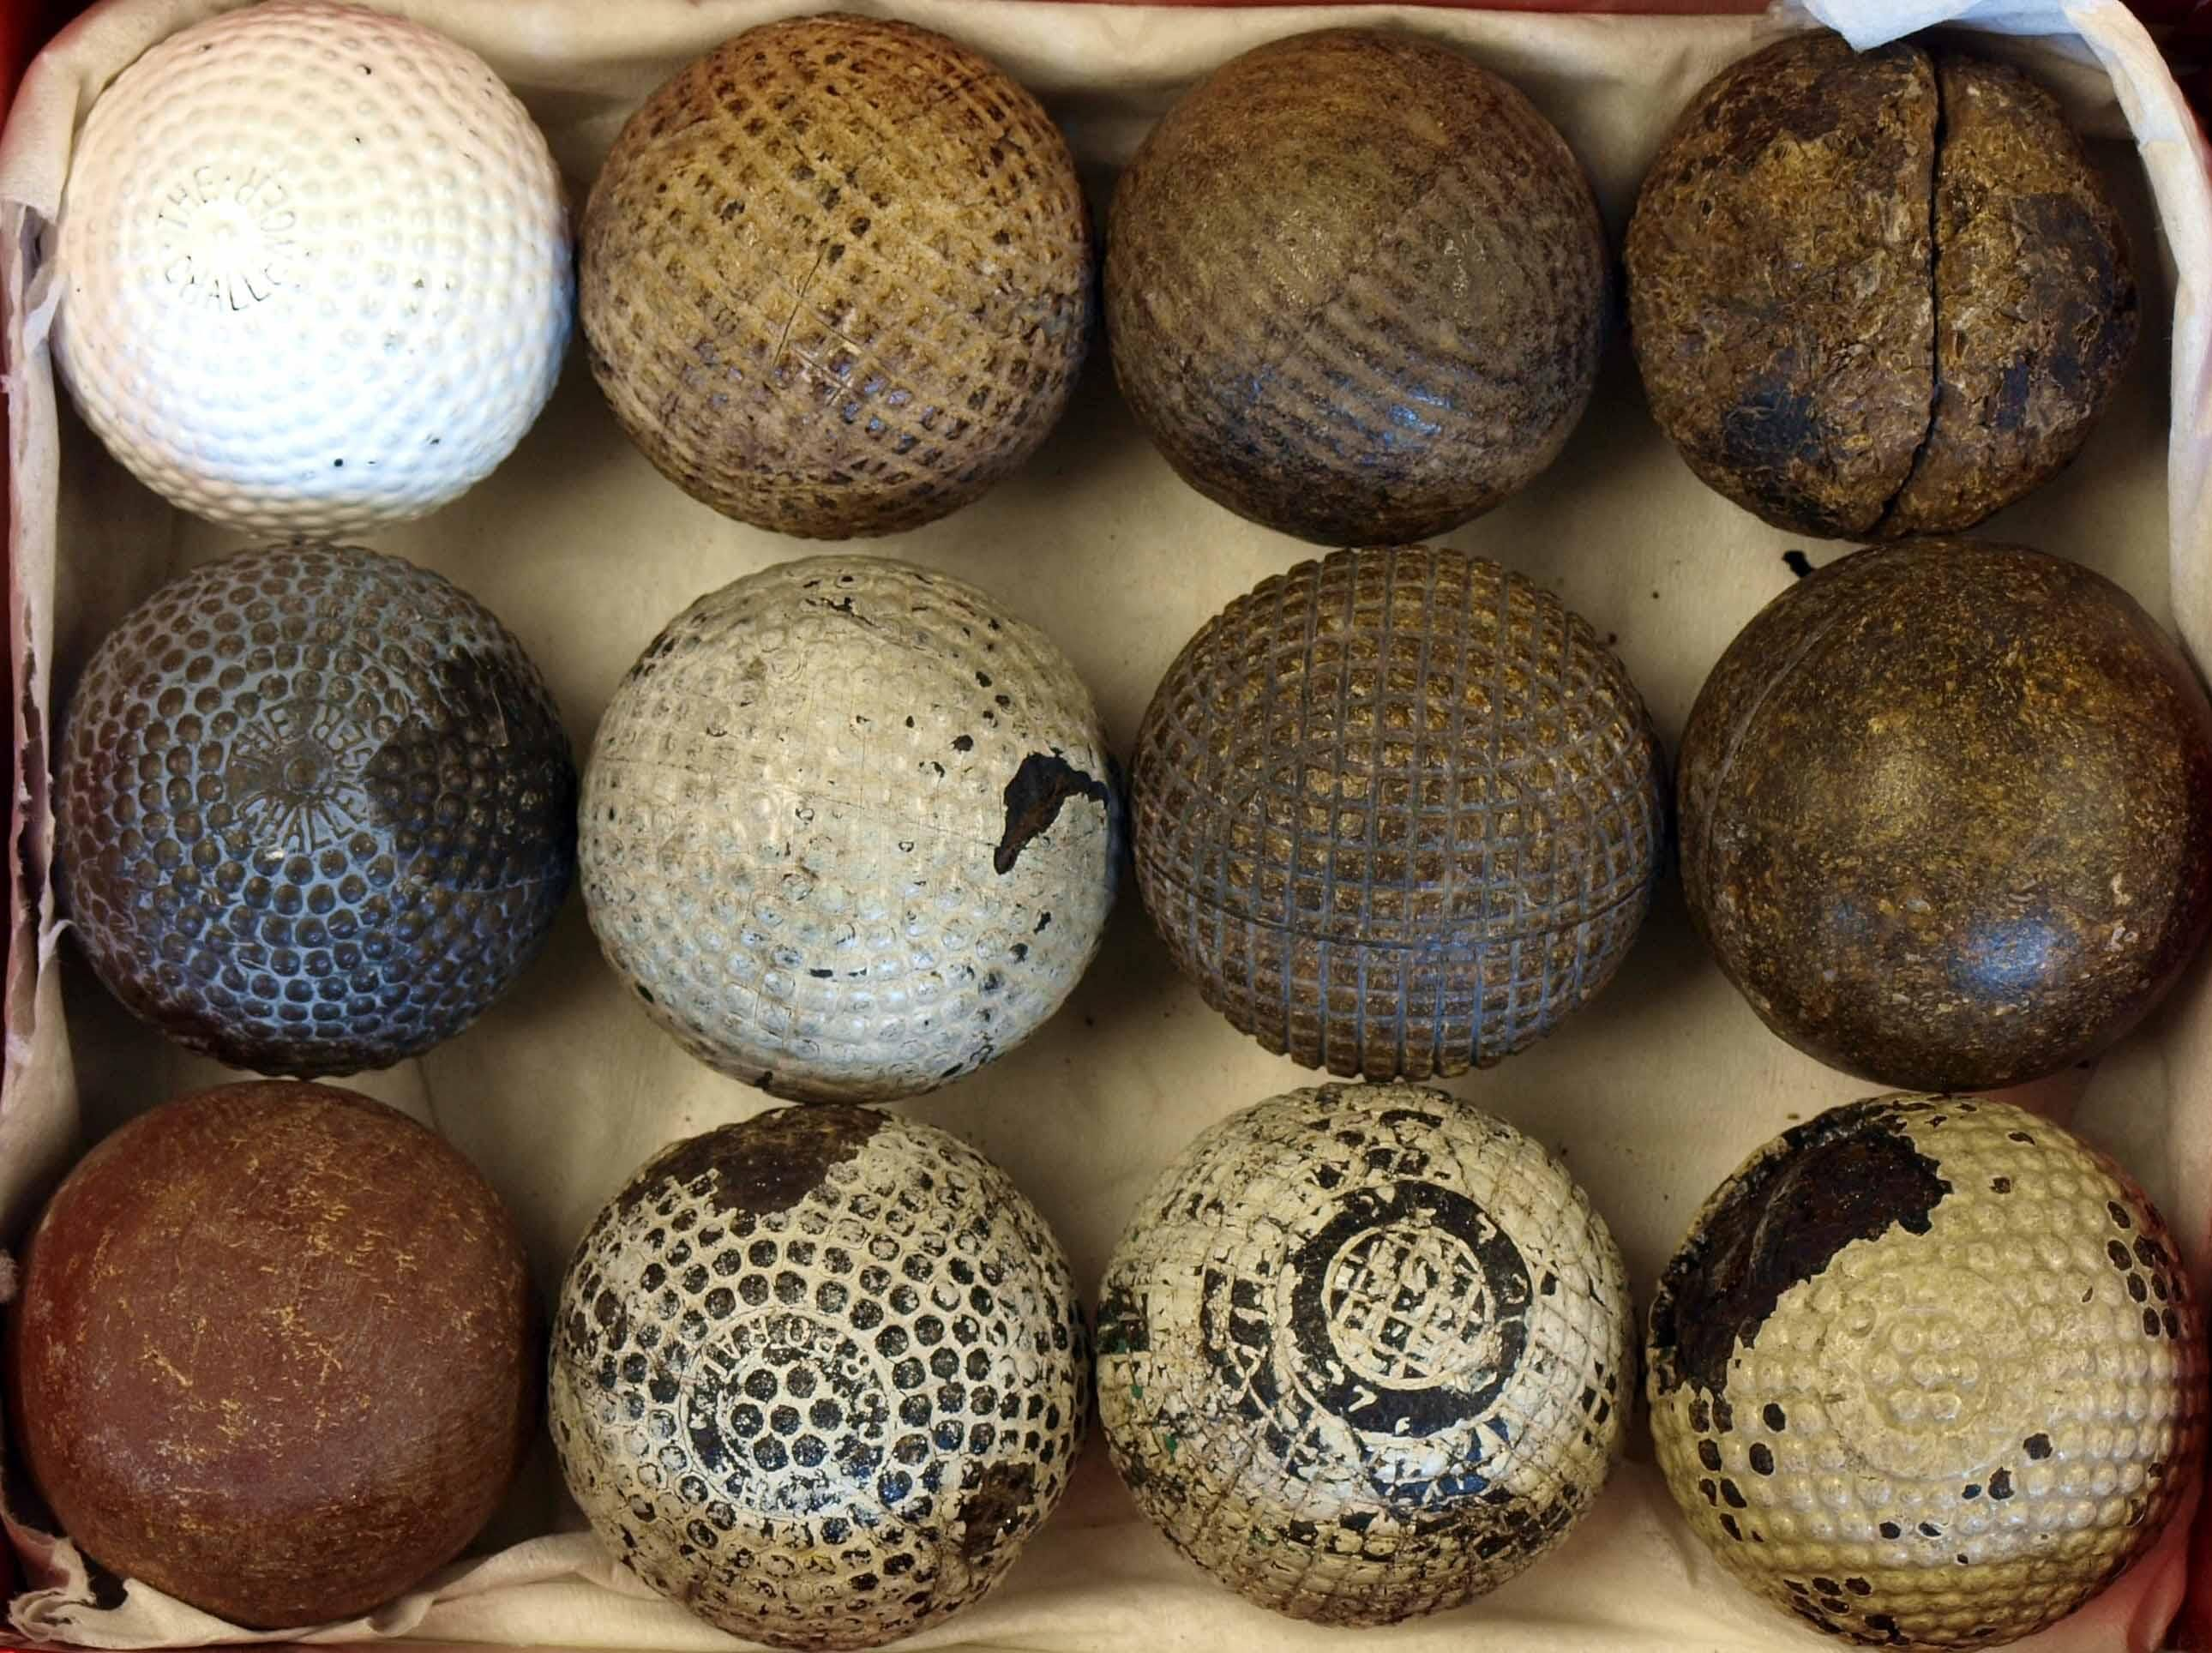 Midget honor gutta percha golf ball